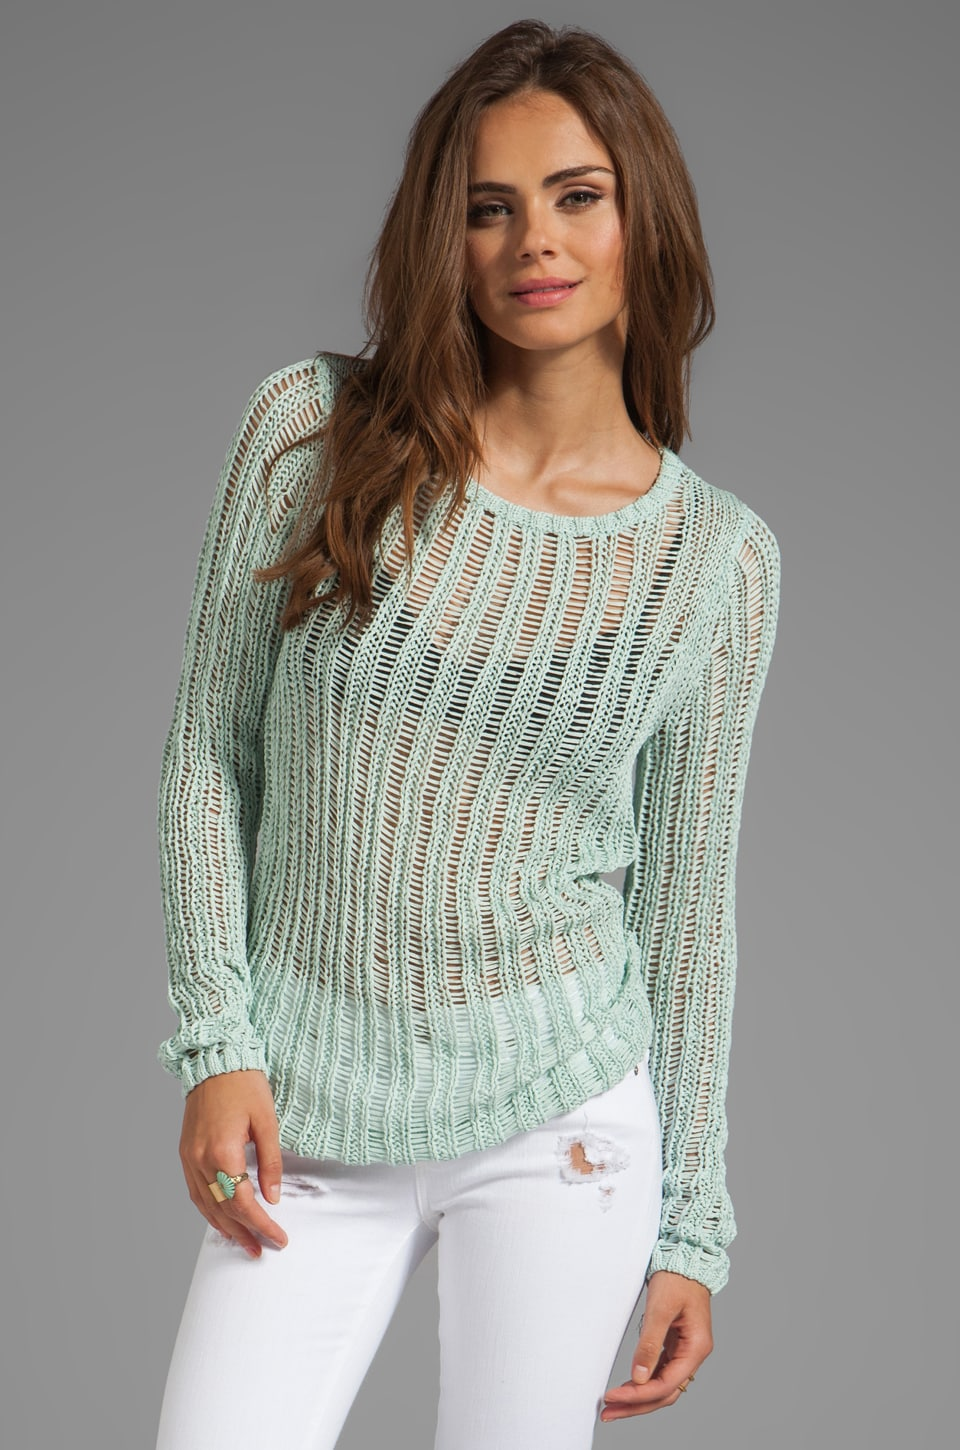 MILLY May Knits Katelyn Ladder Stitch Sweater in Mint